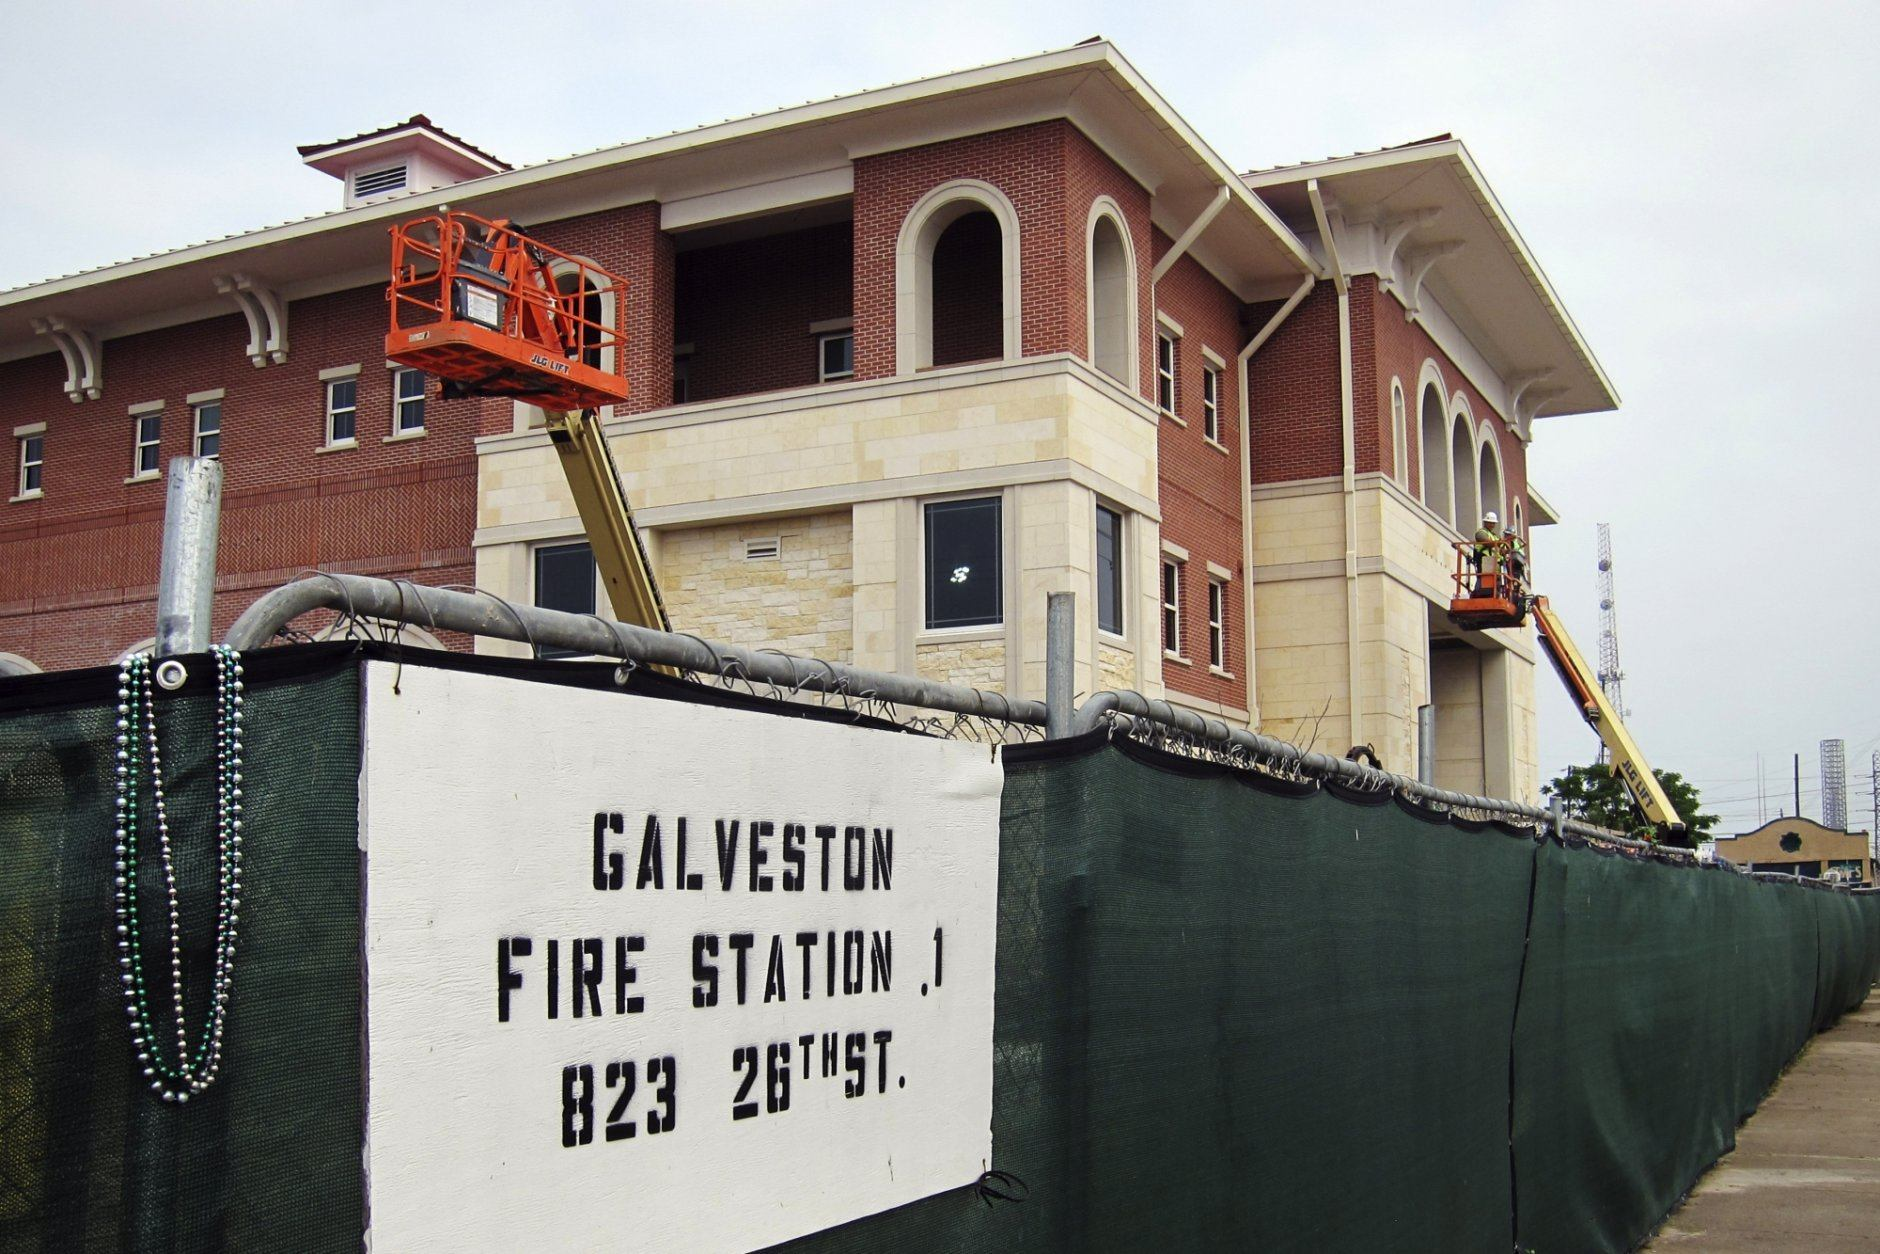 In this Thursday, May 9, 2019, crews in Galveston, Texas, work to finish construction of a downtown fire station that is being built with federal funding the Texas Gulf Coast city received to rebuild infrastructure that was damaged during Hurricane Ike in 2008. The new fire station is one of more than 500 projects that were built or have nearly been completed as the city has worked to come back from Ike's devastating flooding. (AP Photo/Juan A. Lozano)